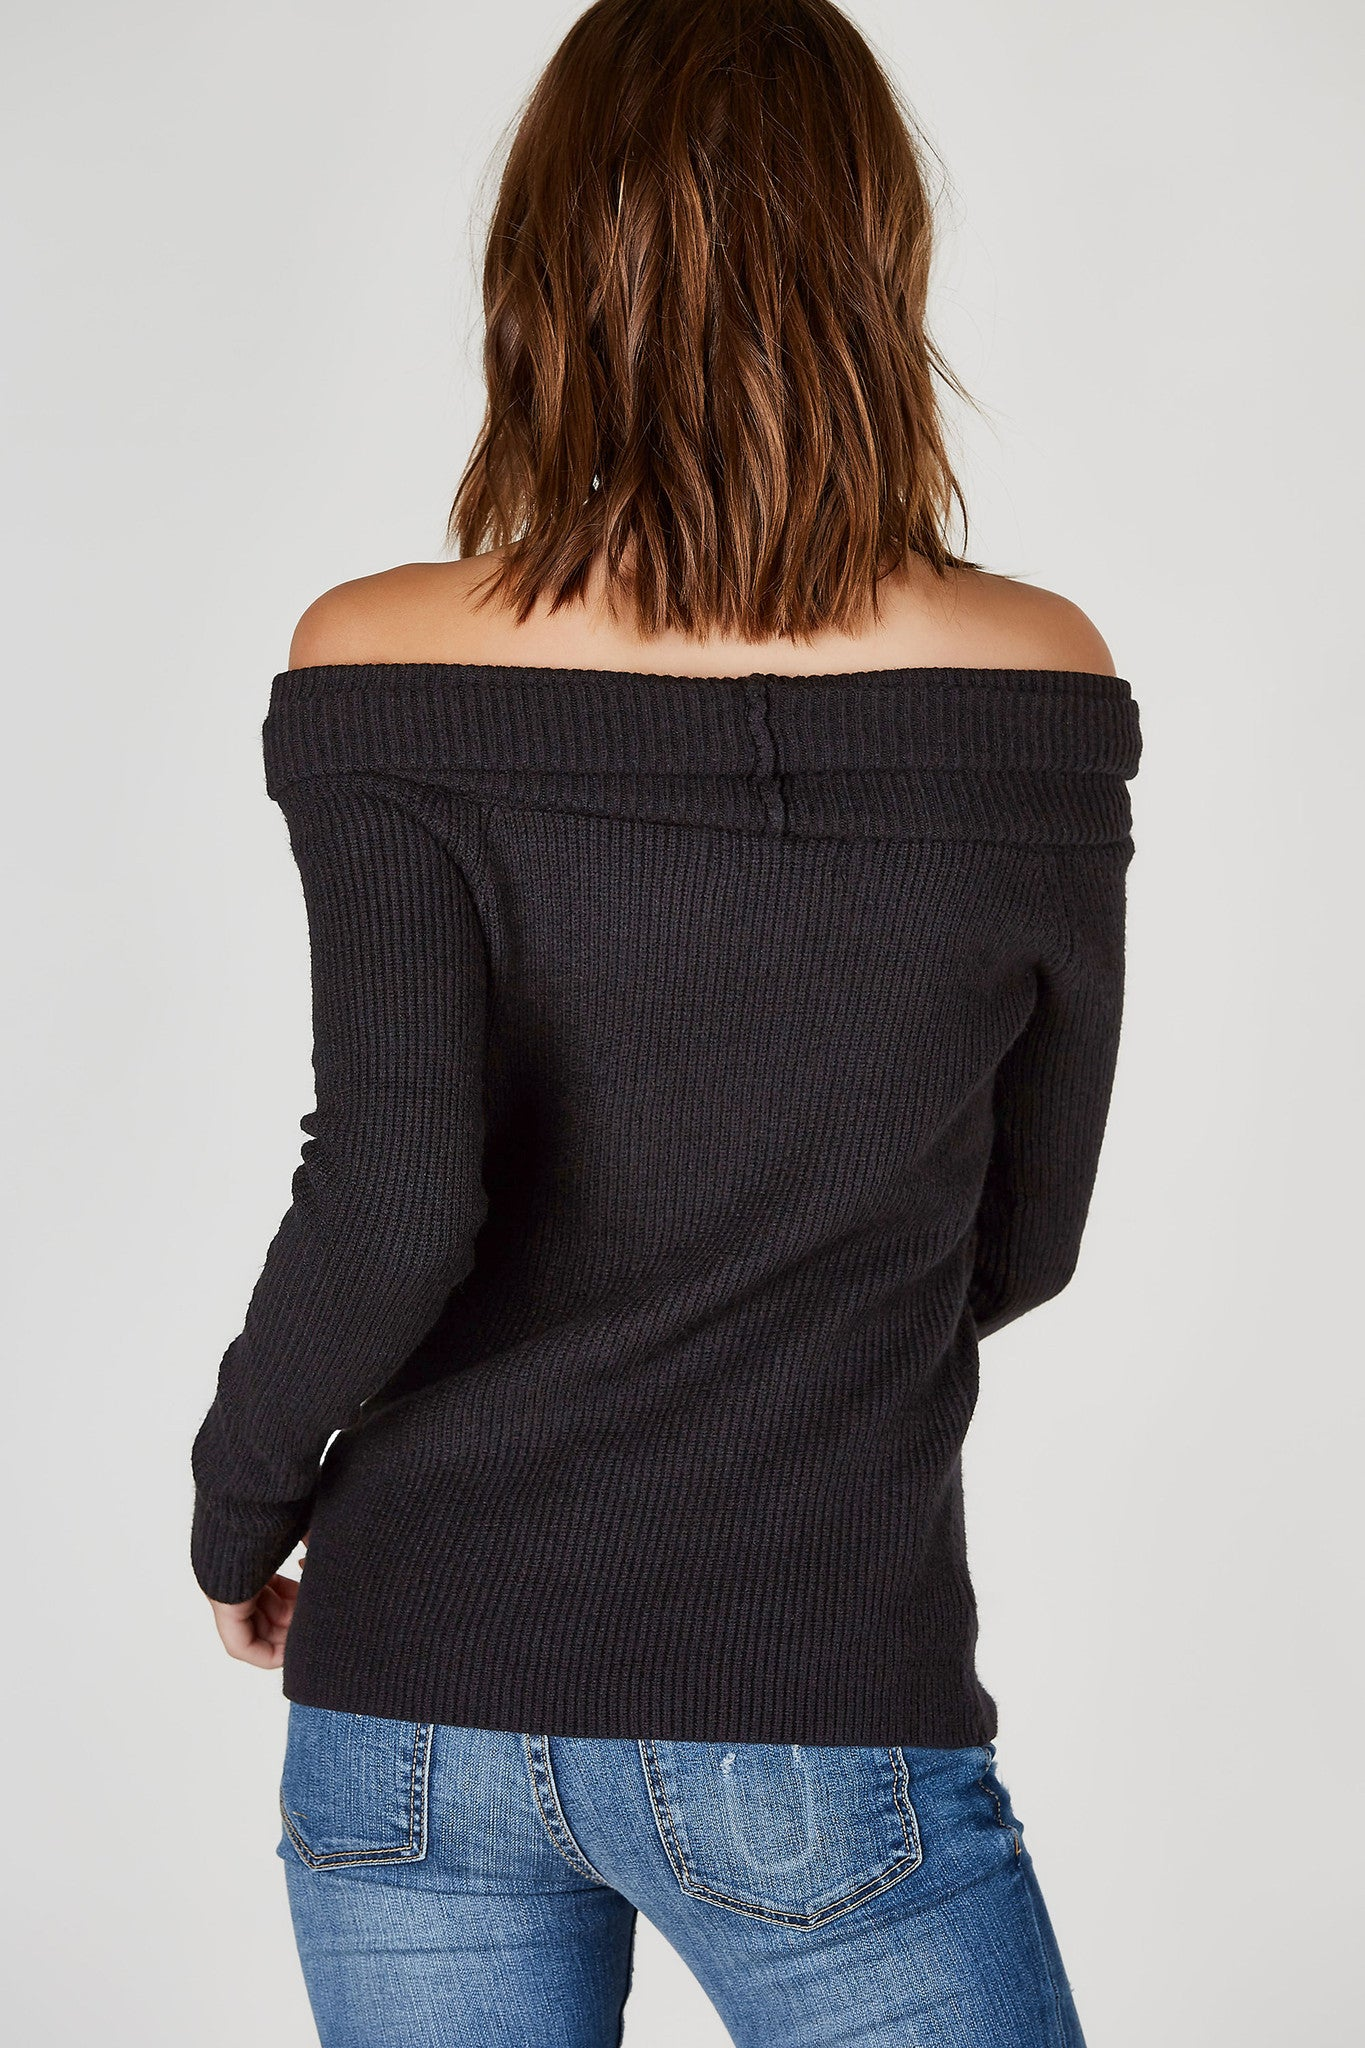 A super clean and chic long sleeve top with a trendy off shoulder neckline for added detail. Perfectly knit for extra comfort. Stretchy, ribbed fit great to style with skinny jeans and ankle booties!